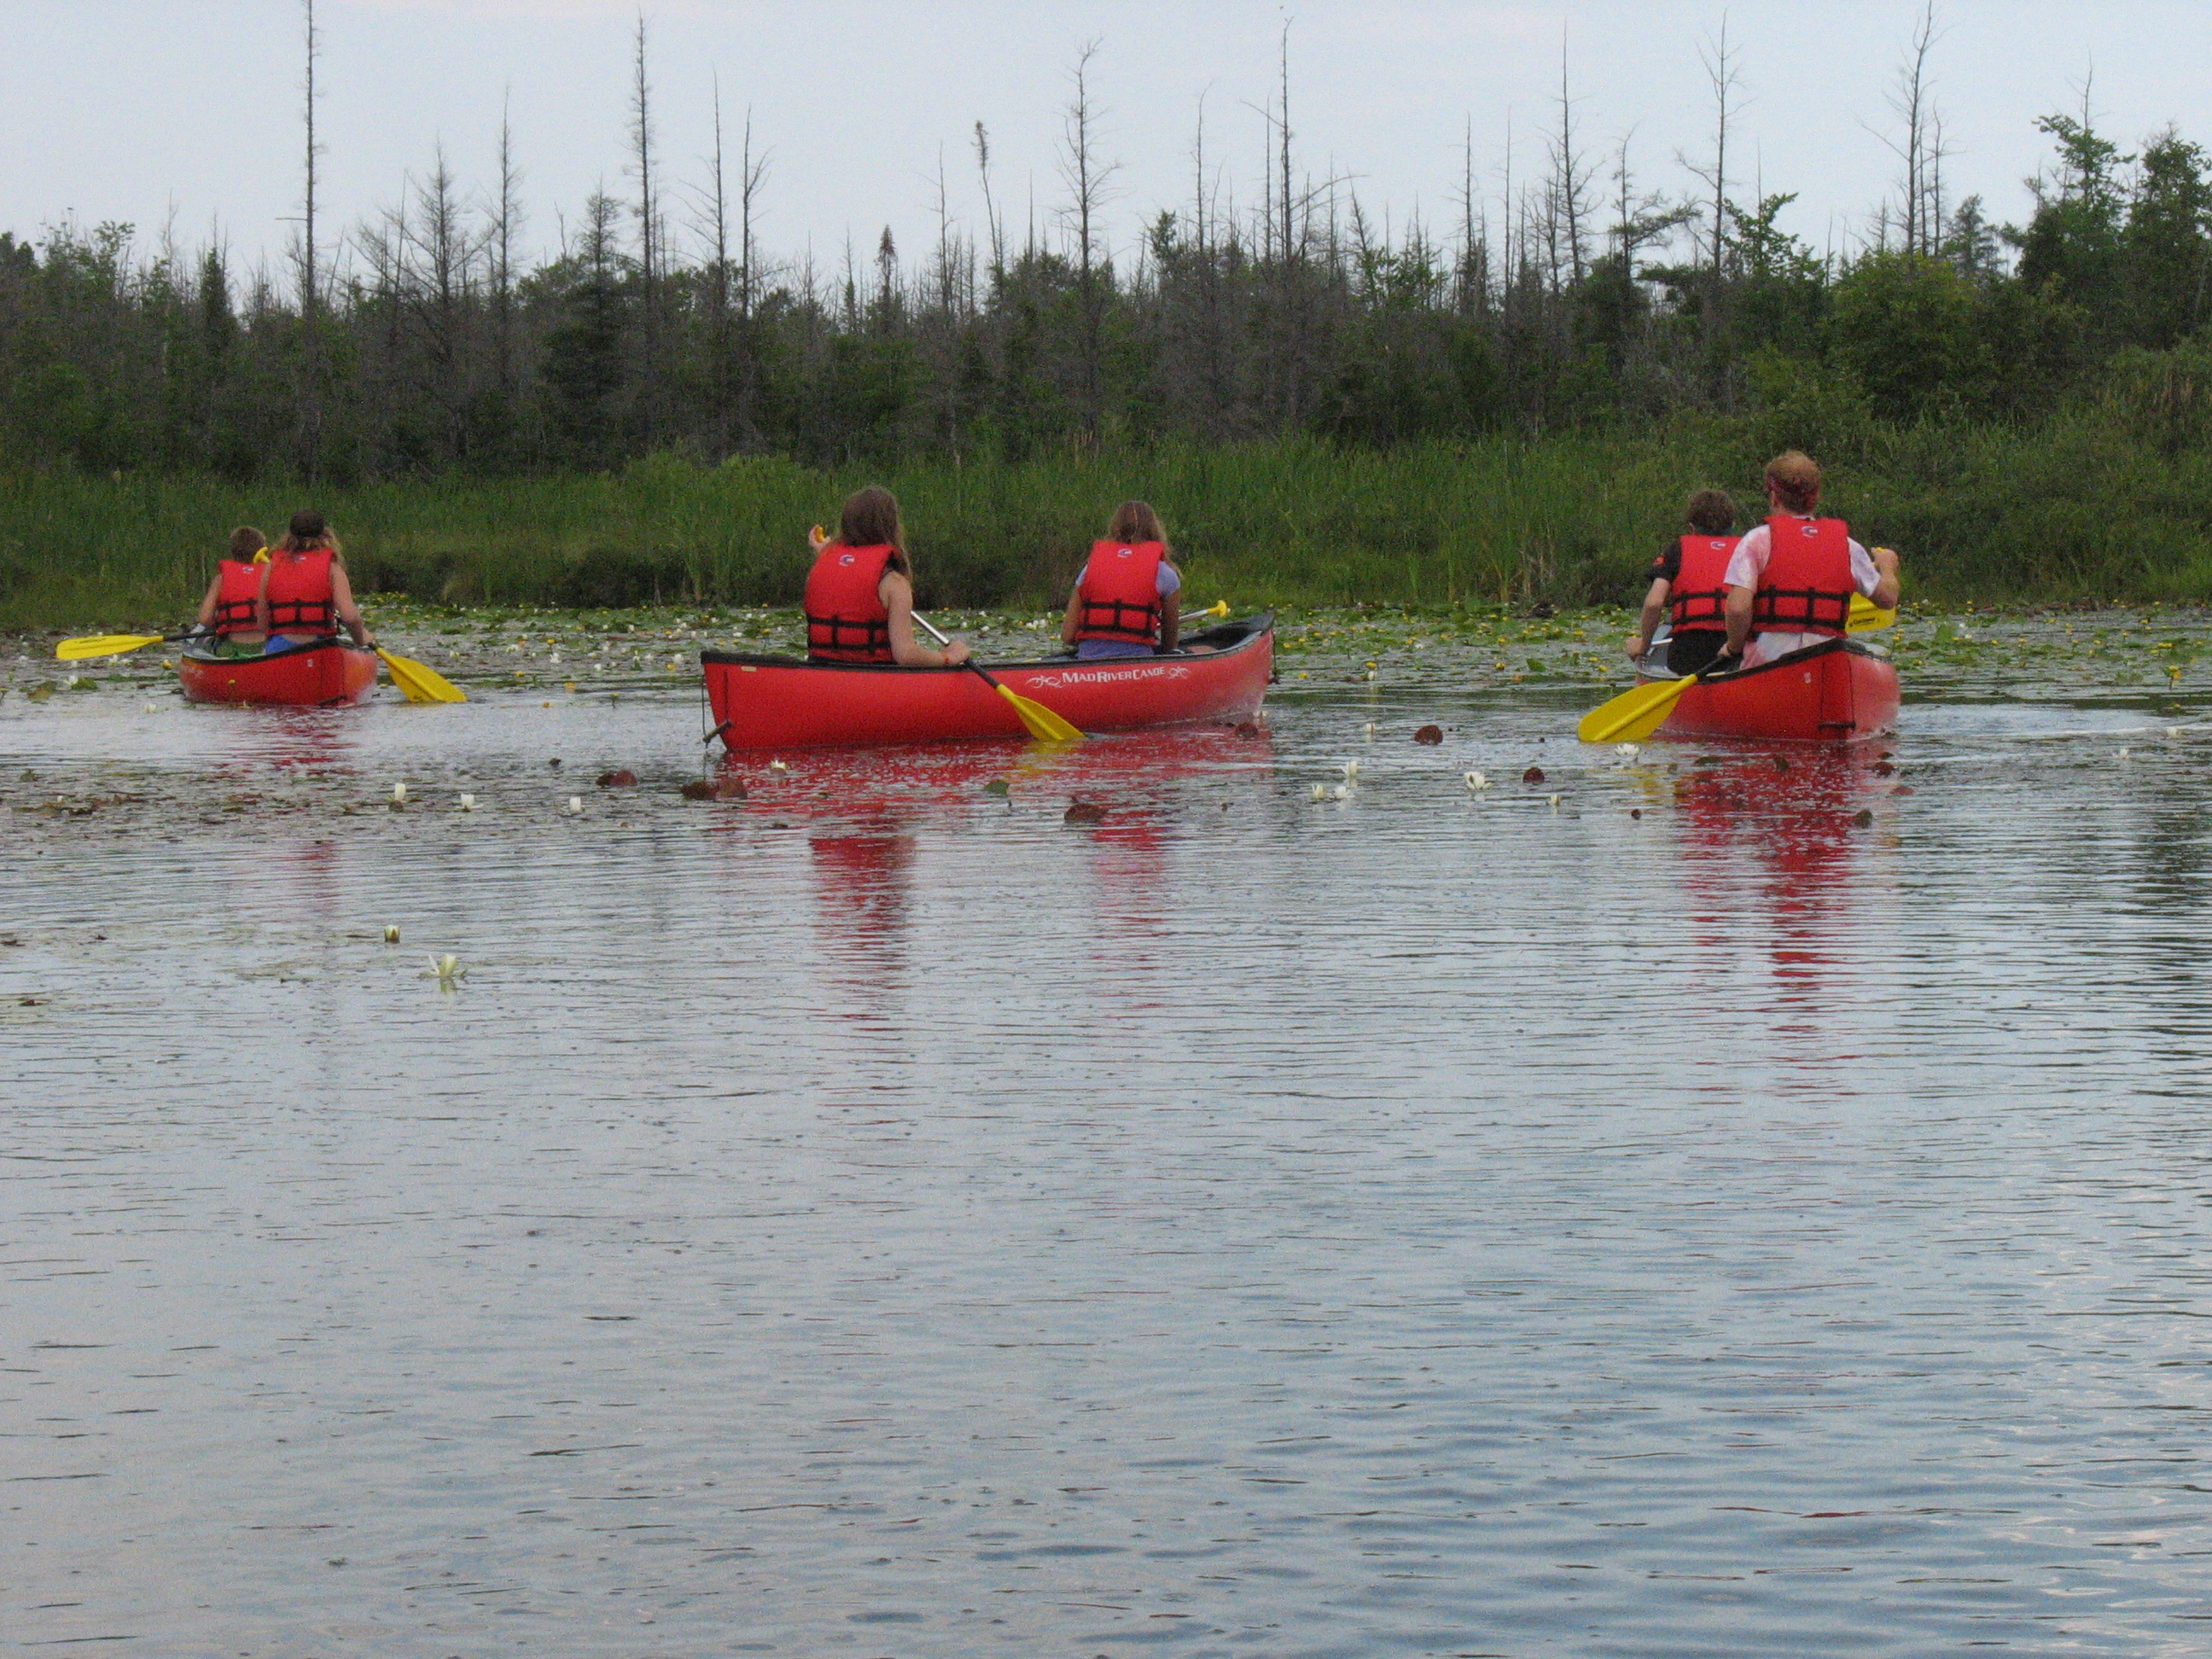 A group of canoers paddle through a marshland.